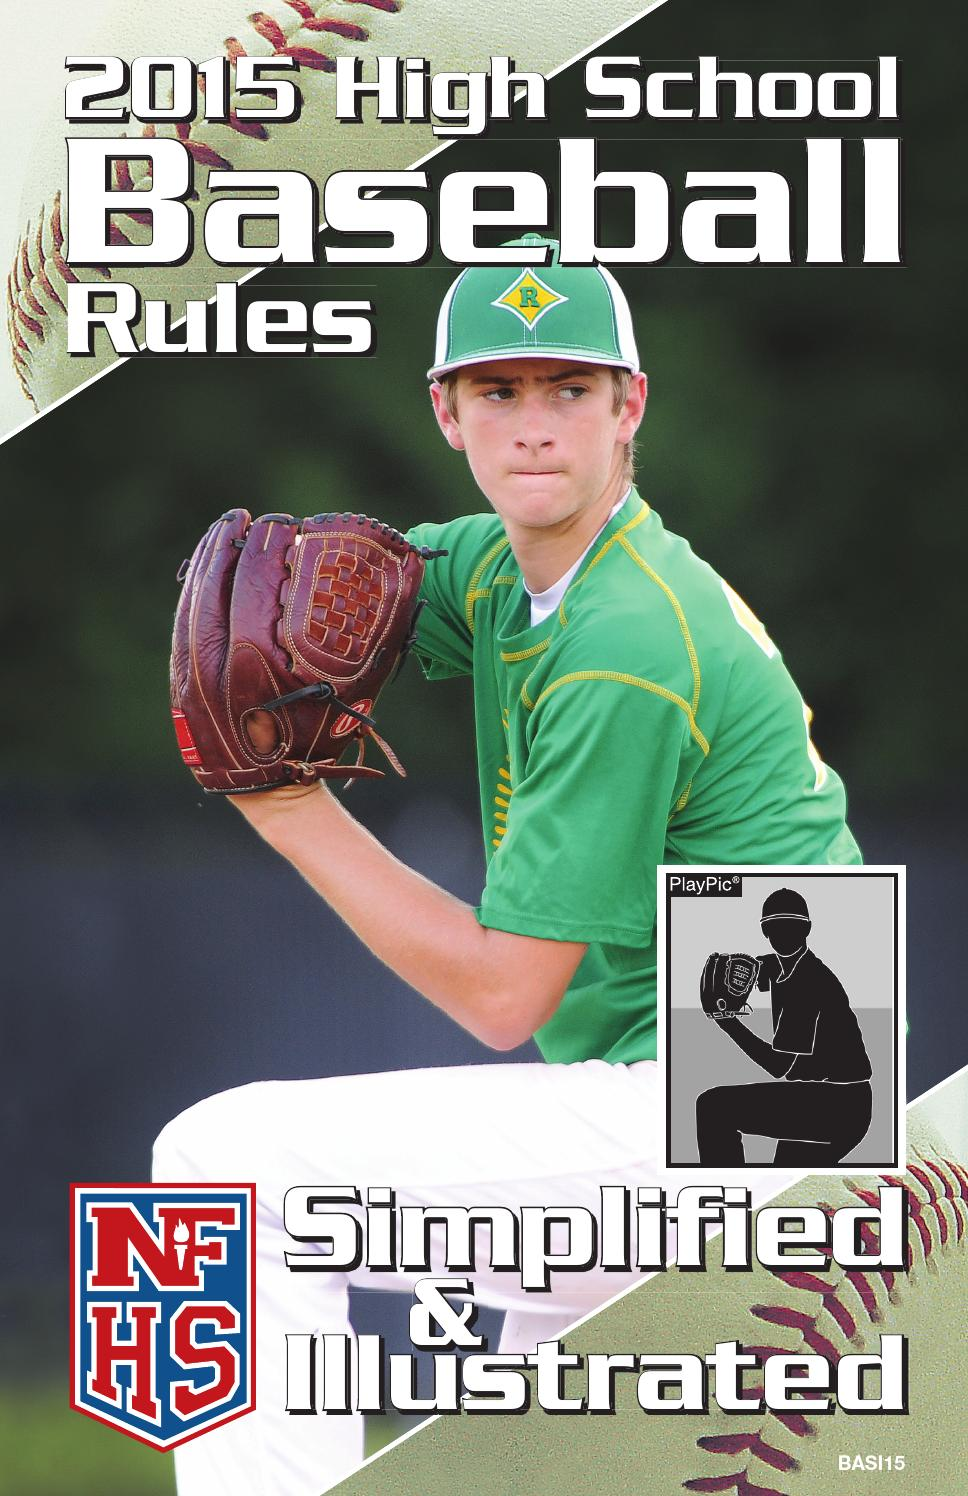 2015 Nfhs High School Baseball Rules Simplified